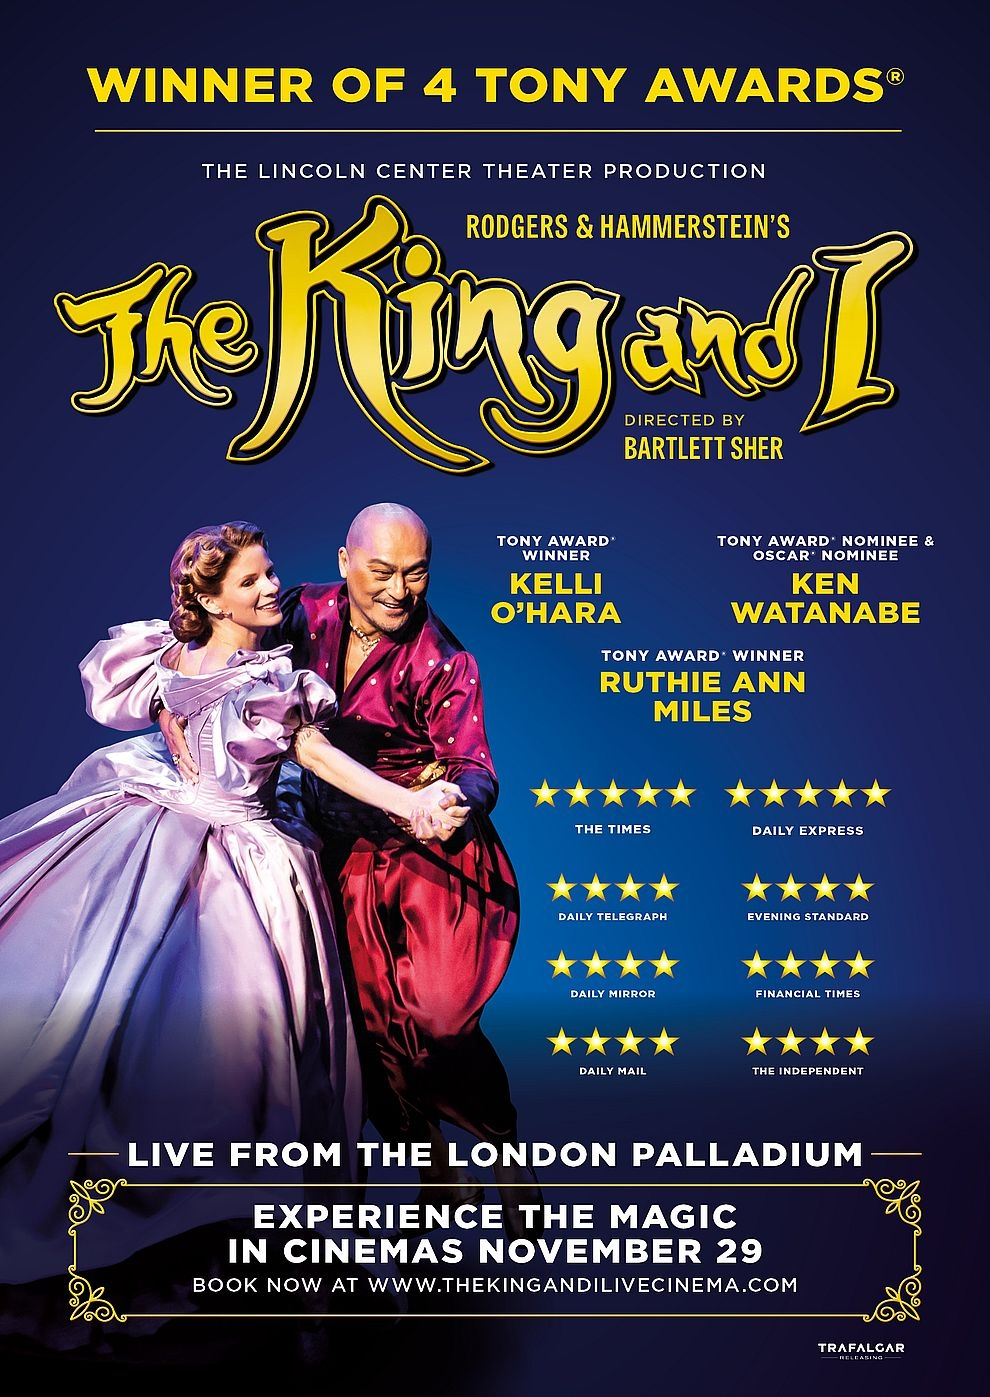 The King And I - Musical from London Palladium 2018 (Poster)